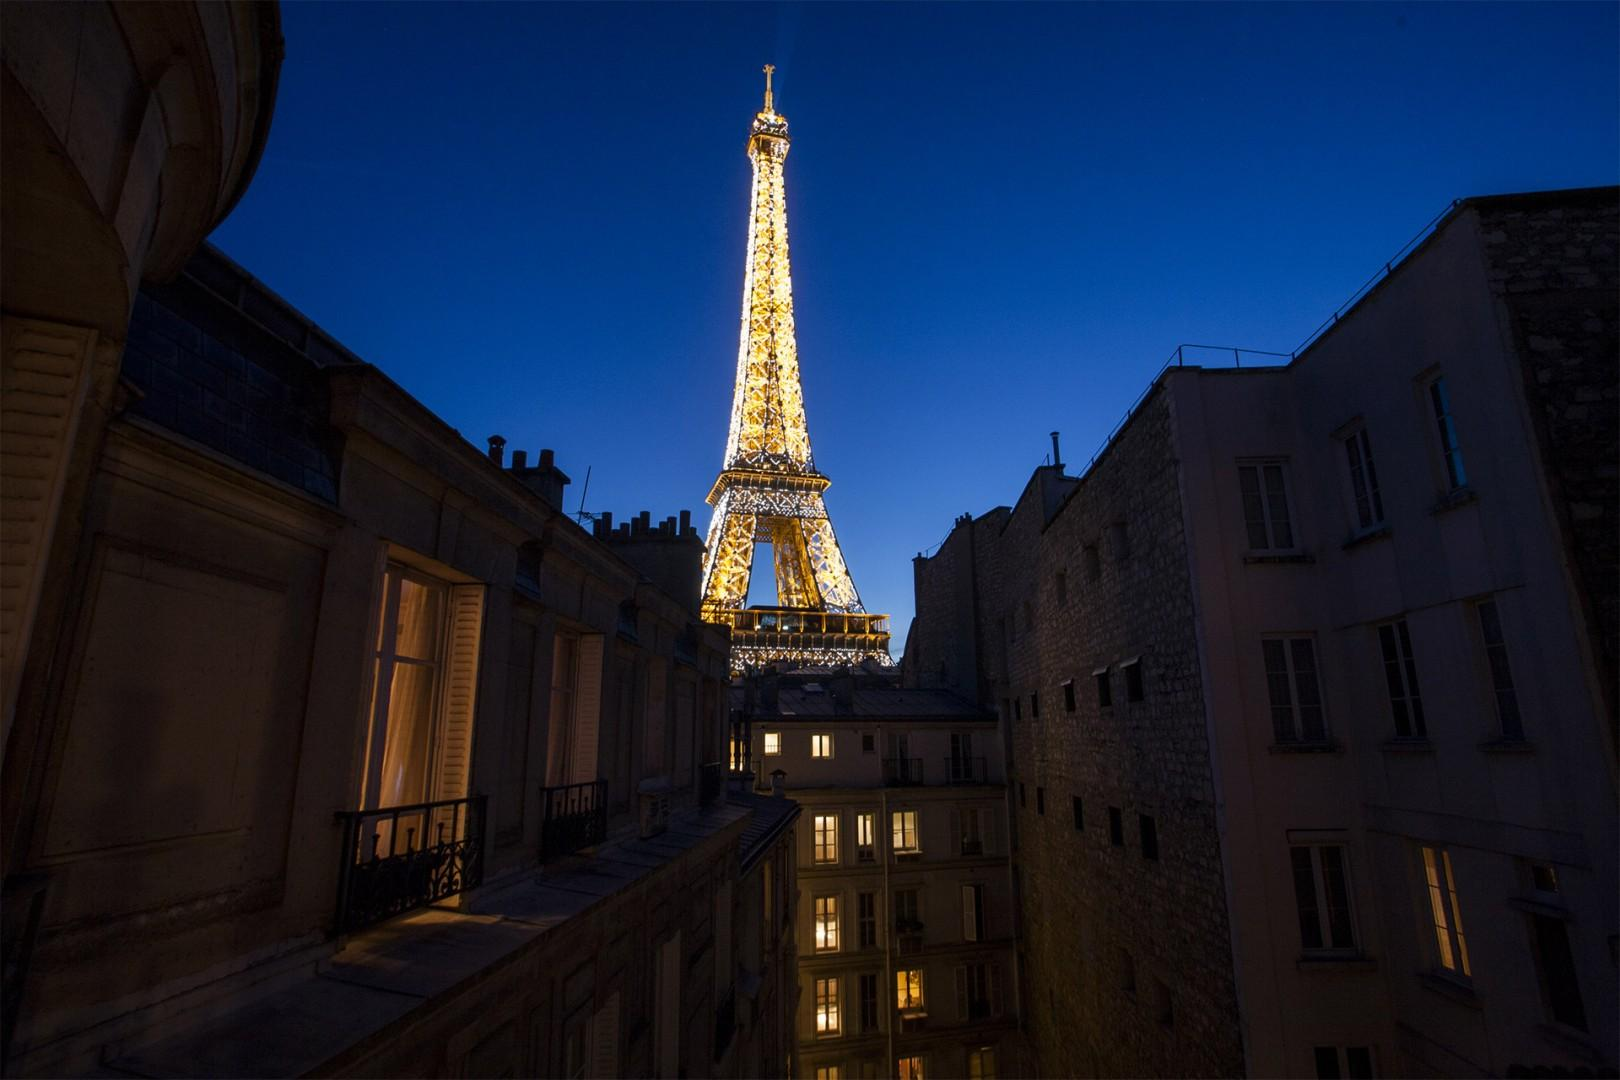 Enjoy the unforgettable view of the Eiffel Tower at night!